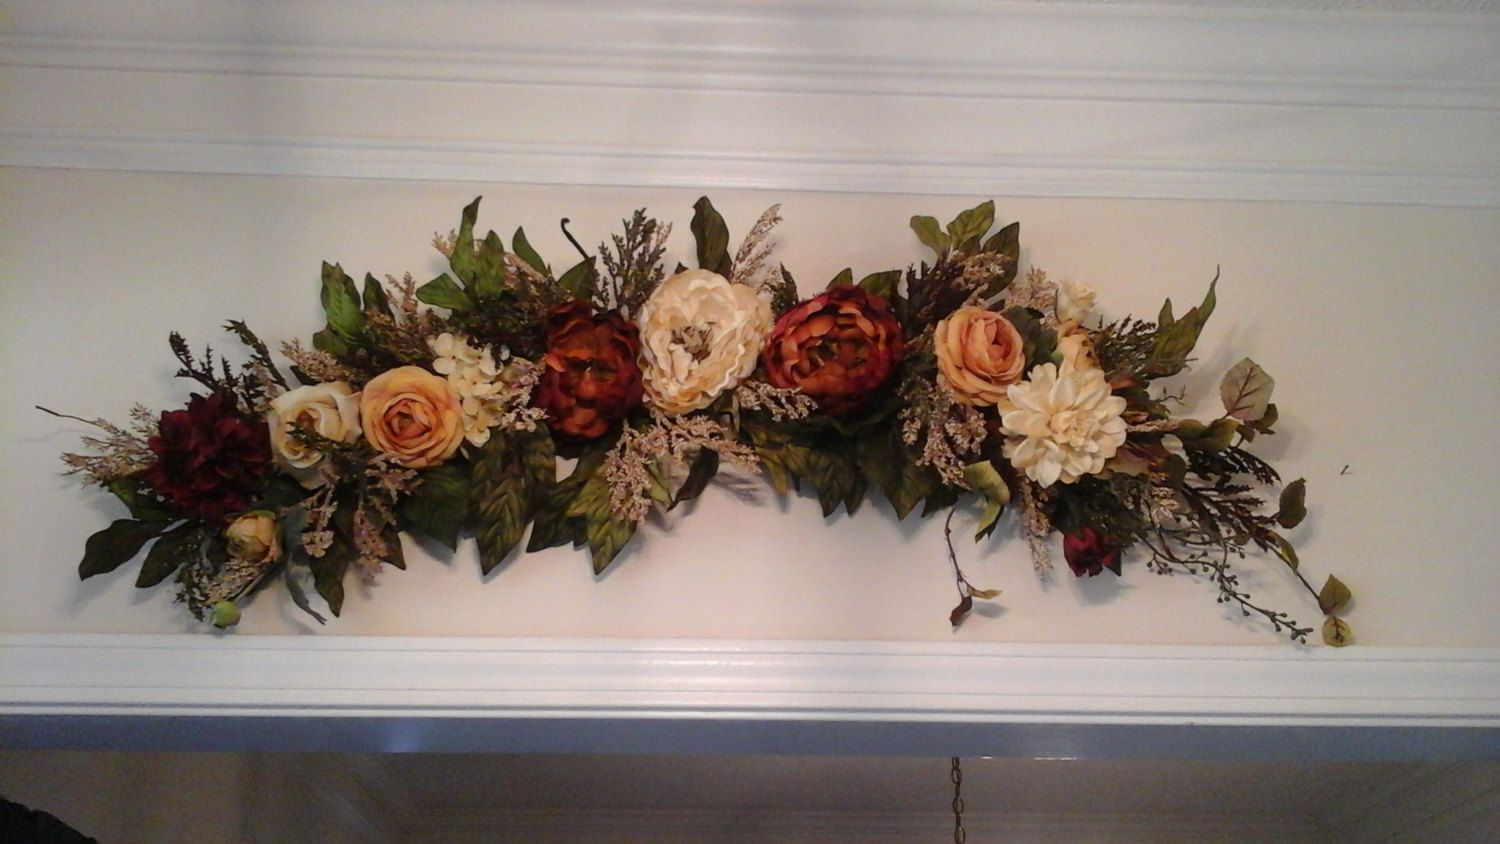 Silk Arrangements For Home Decor Floral Wall Swagtuscan Silk Floral Arrangementshipping Included